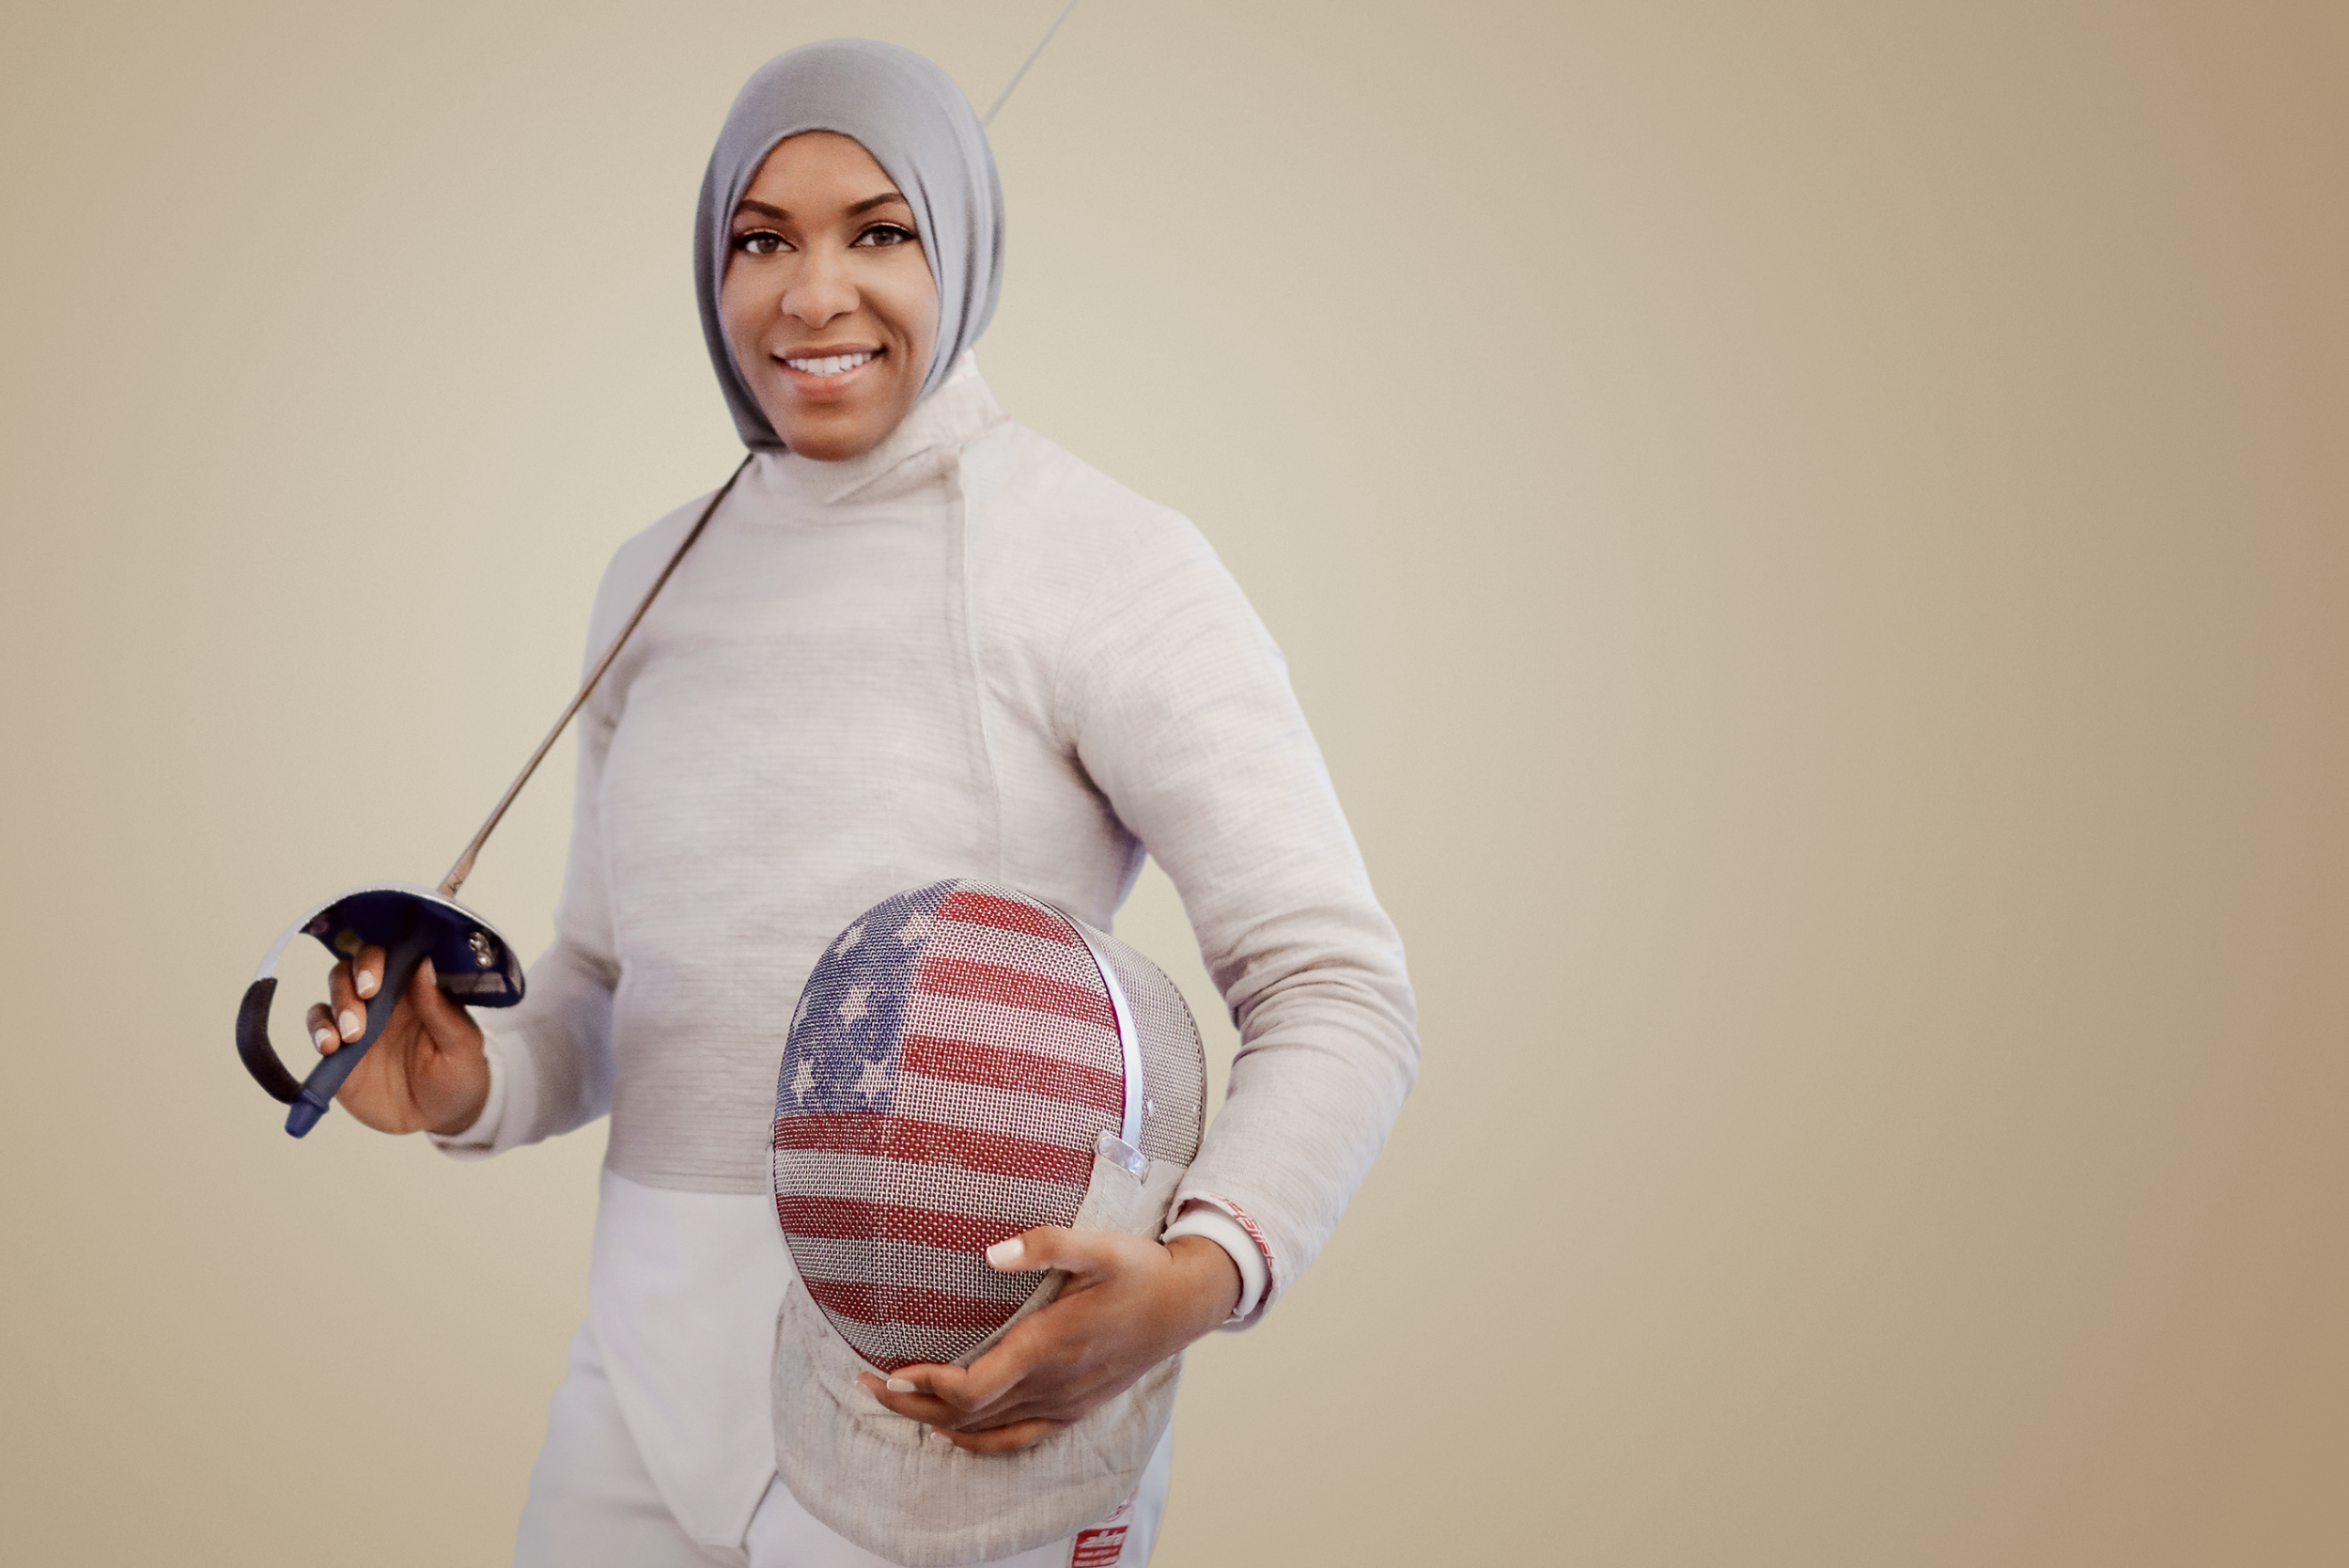 Leader_Nominee_Ibtihaj Muhammad_545536580